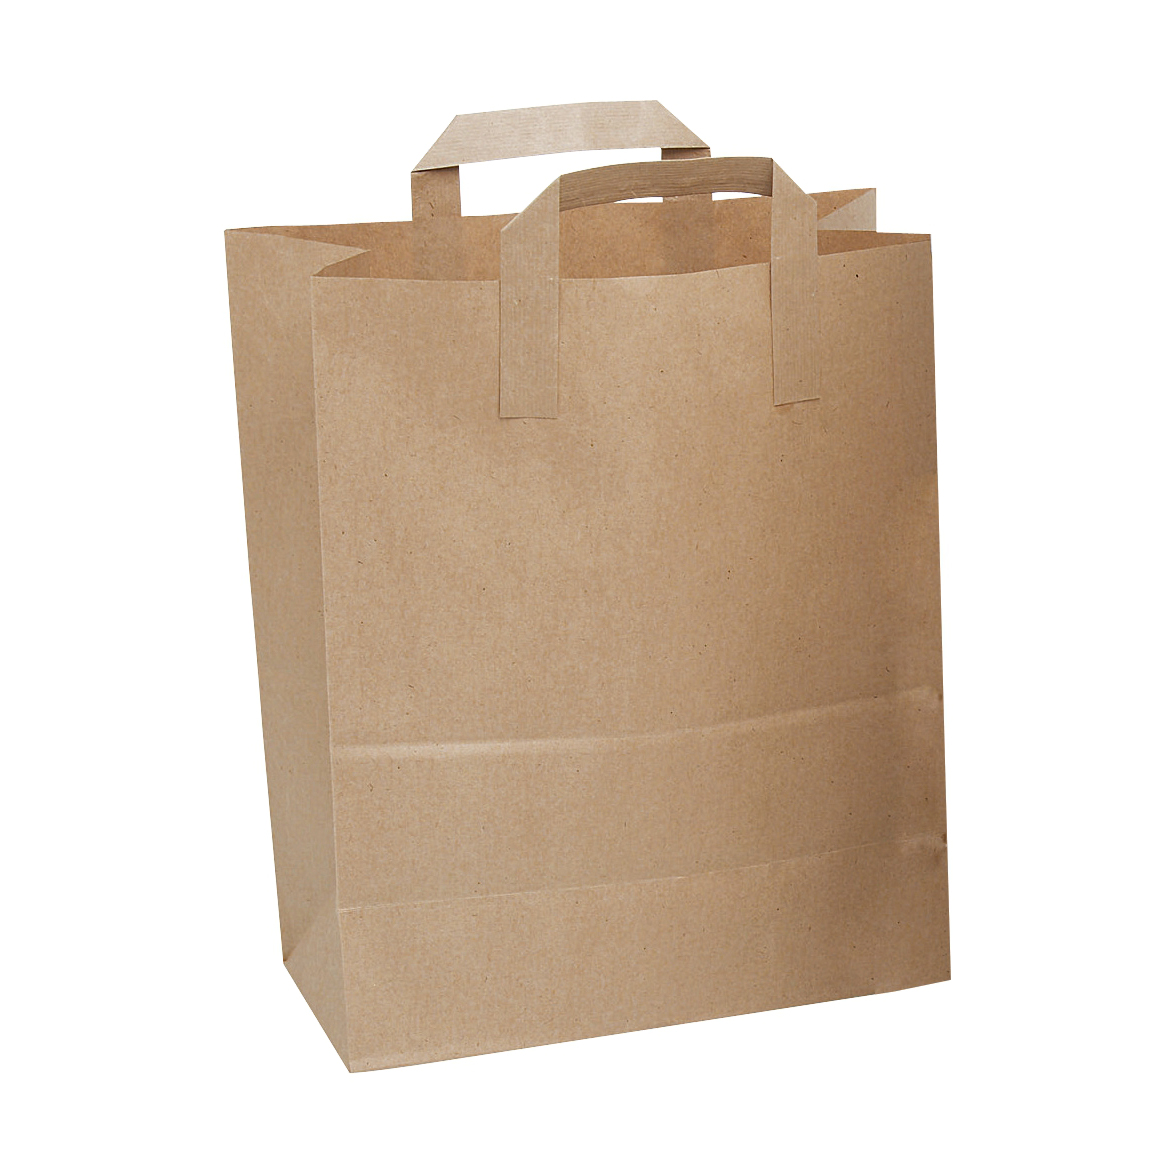 Image for Brown Paper Carrier Bags Flat Handle Brown [Pack 250] (0)